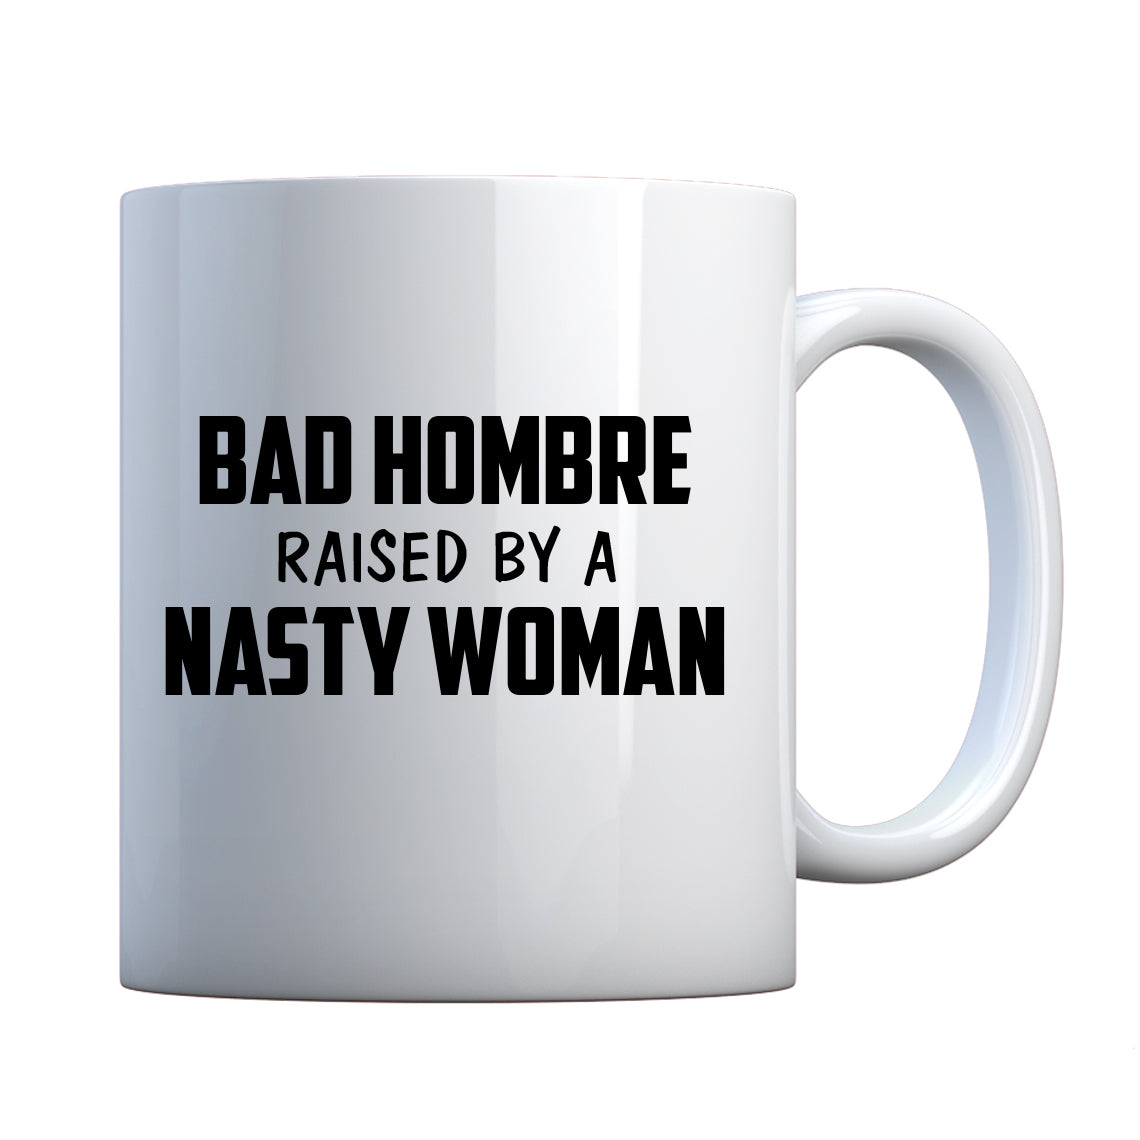 Mug Bad Hombre Raised by a Nasty Woman Ceramic Gift Mug